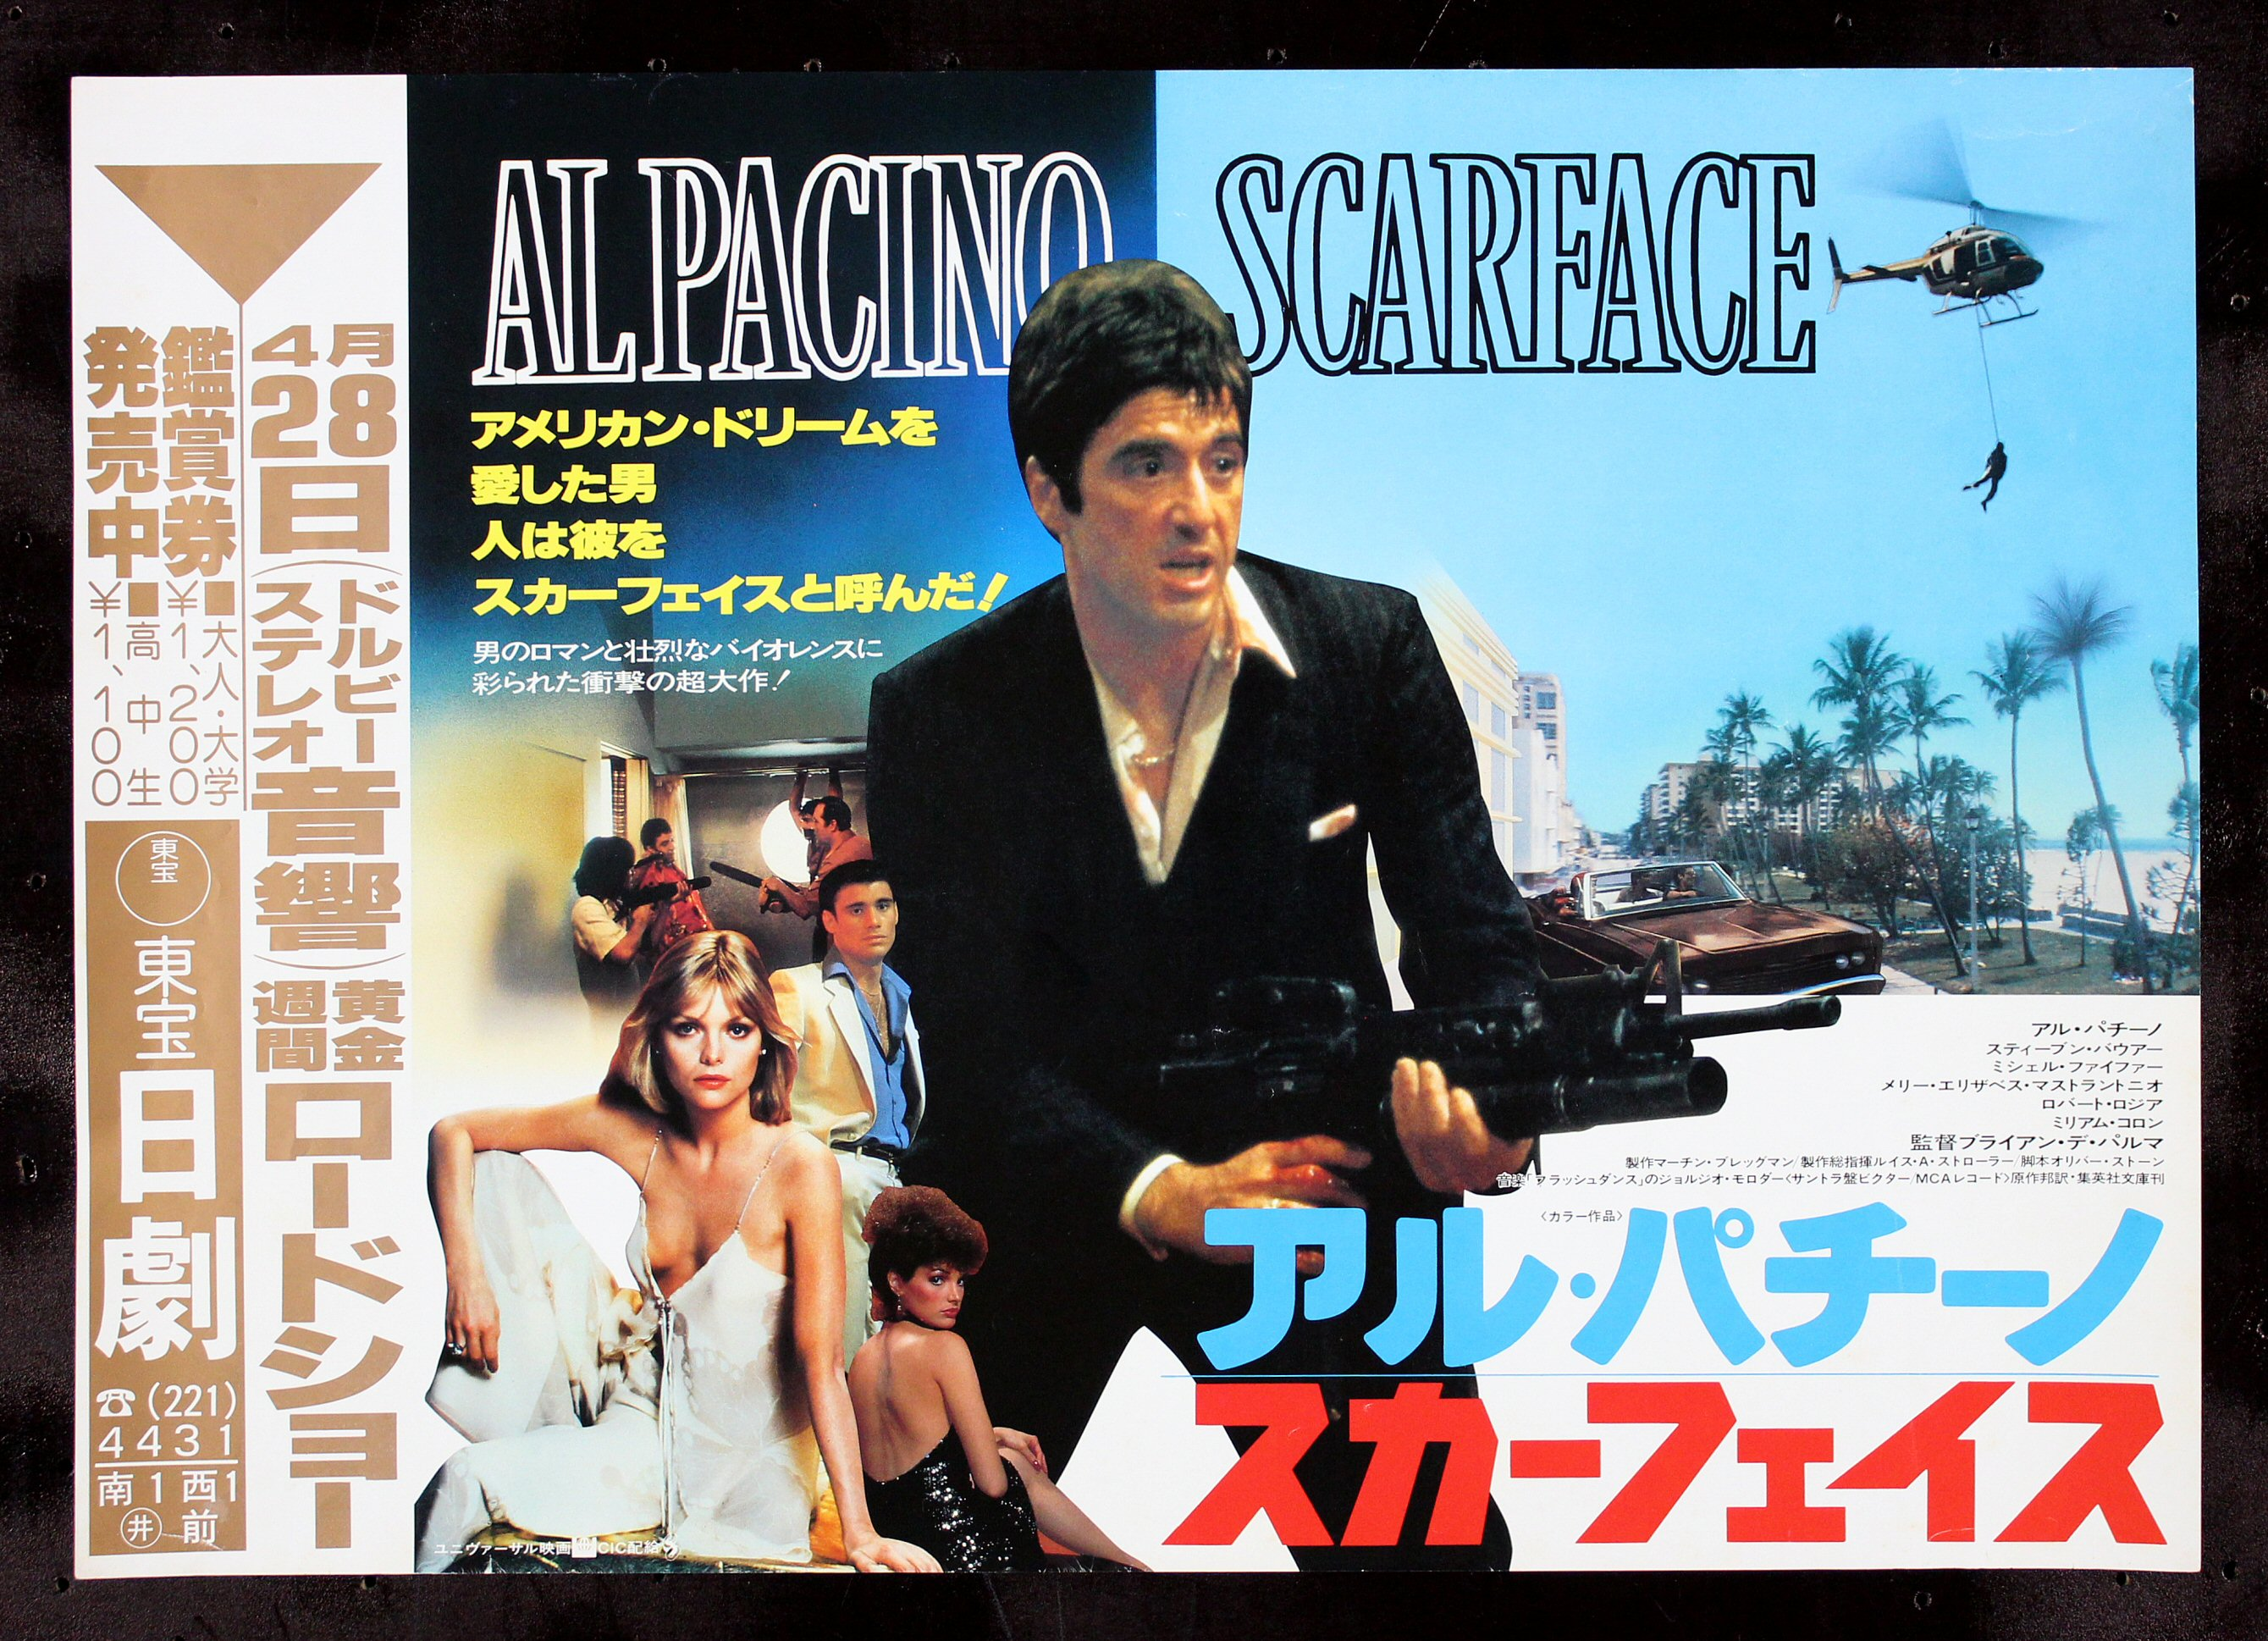 Scarface Snow White Sound of Music Movie Posters ...